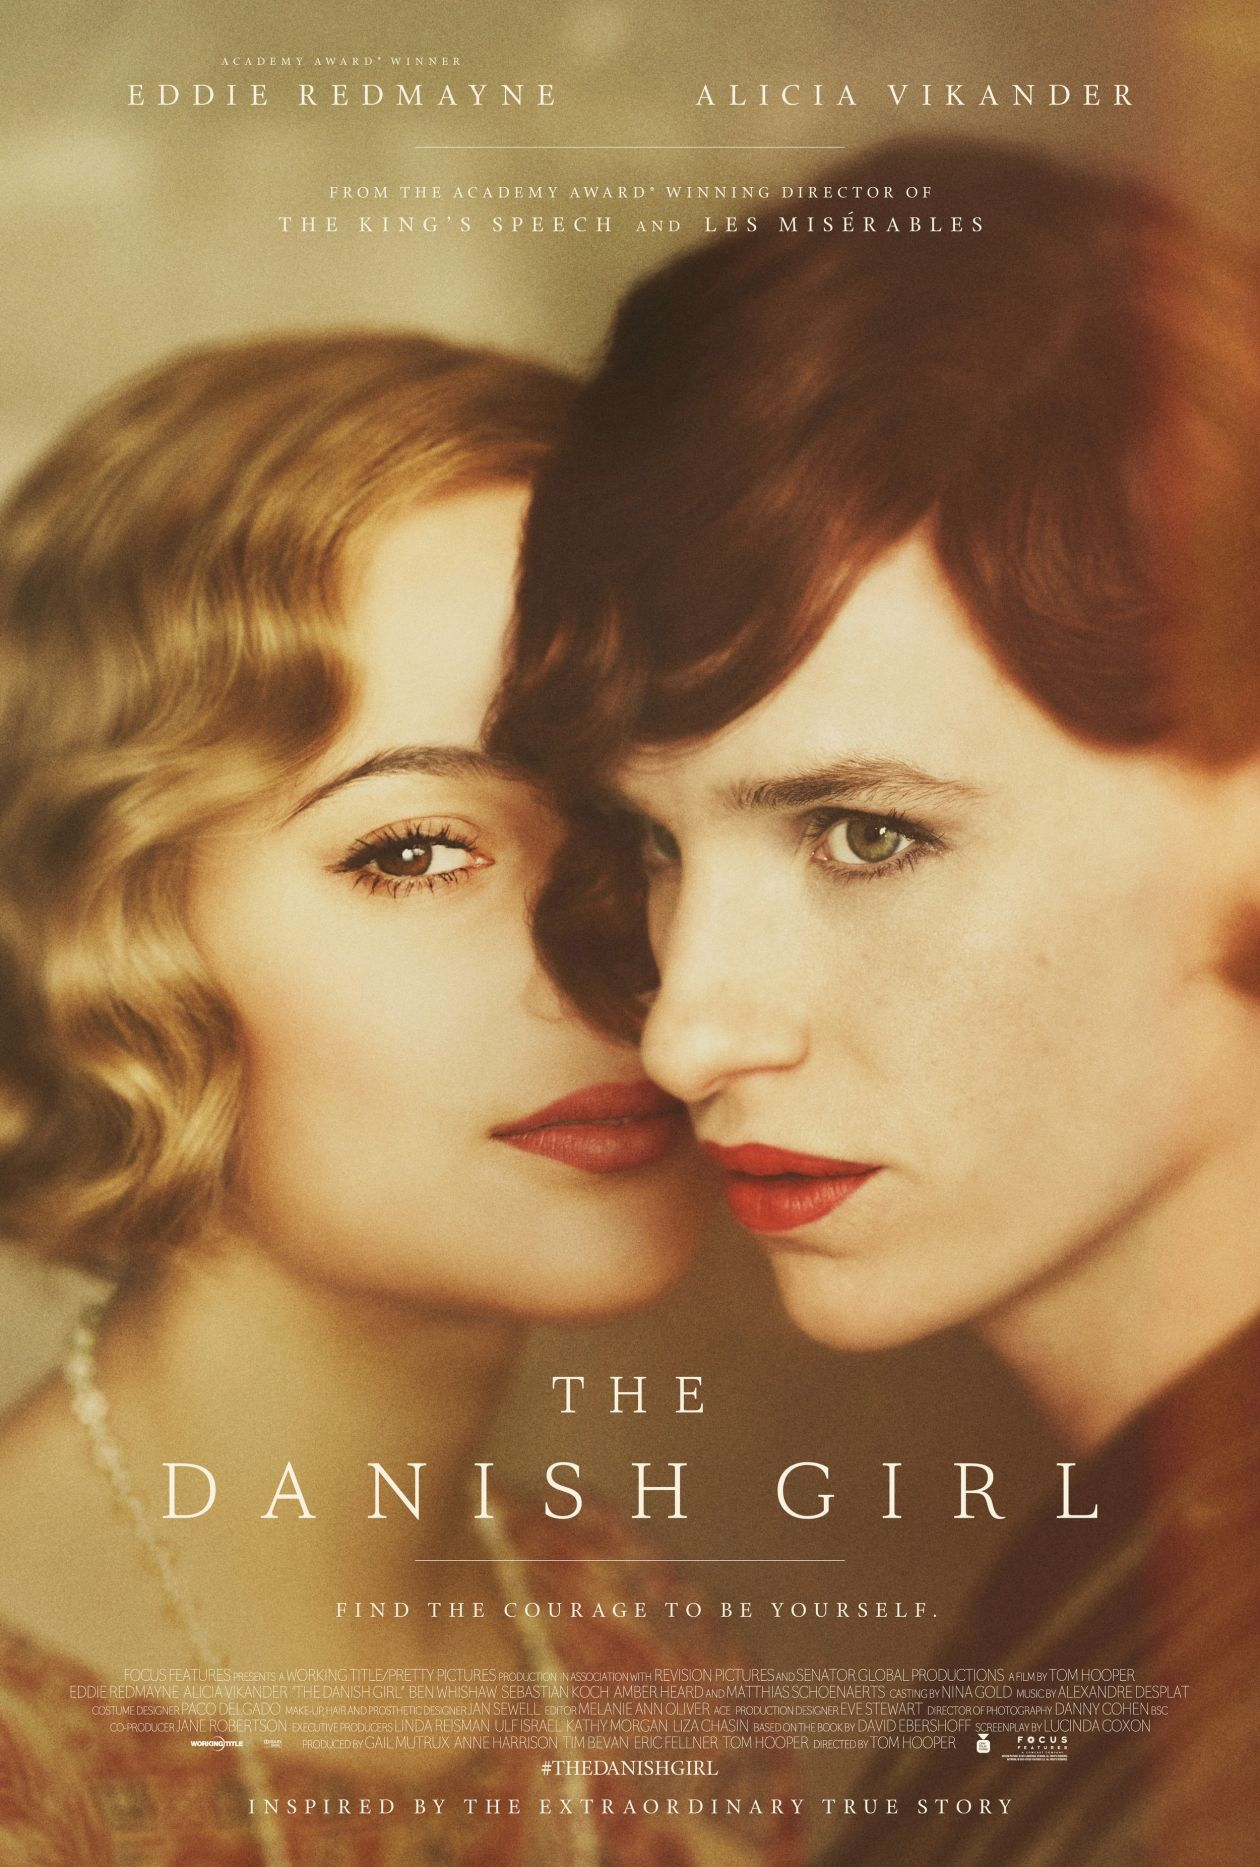 Alicia Vikander actress | The Danish Girl / Tom Hooper 2015 movie poster / Affiche film